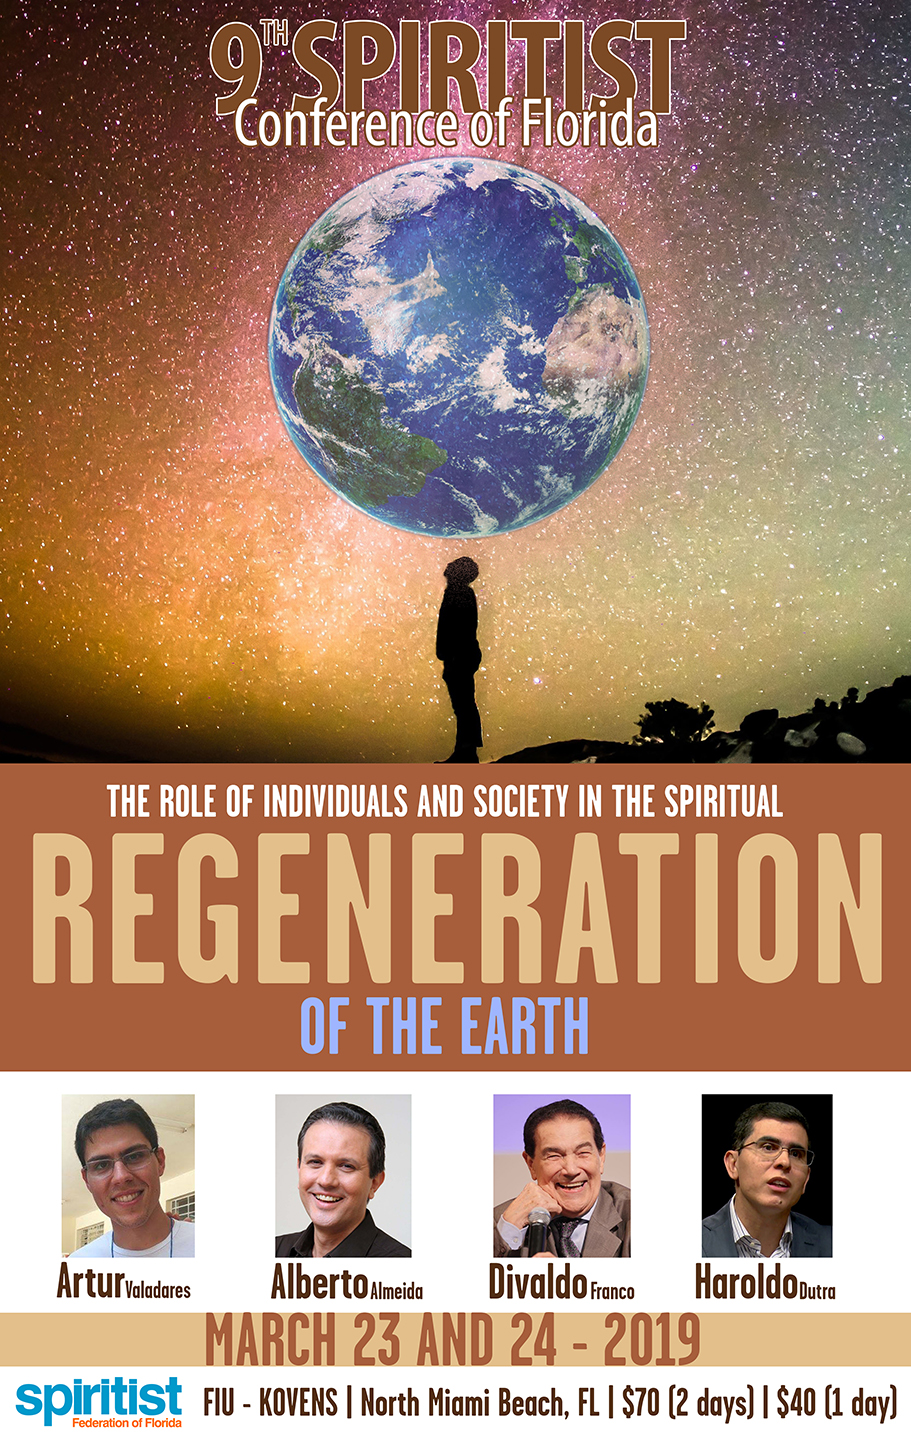 9th SFF Conference - The Role of Individuals and Society in the Spiritual REGENERATION OF THE EARTH. MARCH 23 and 24 of 2019